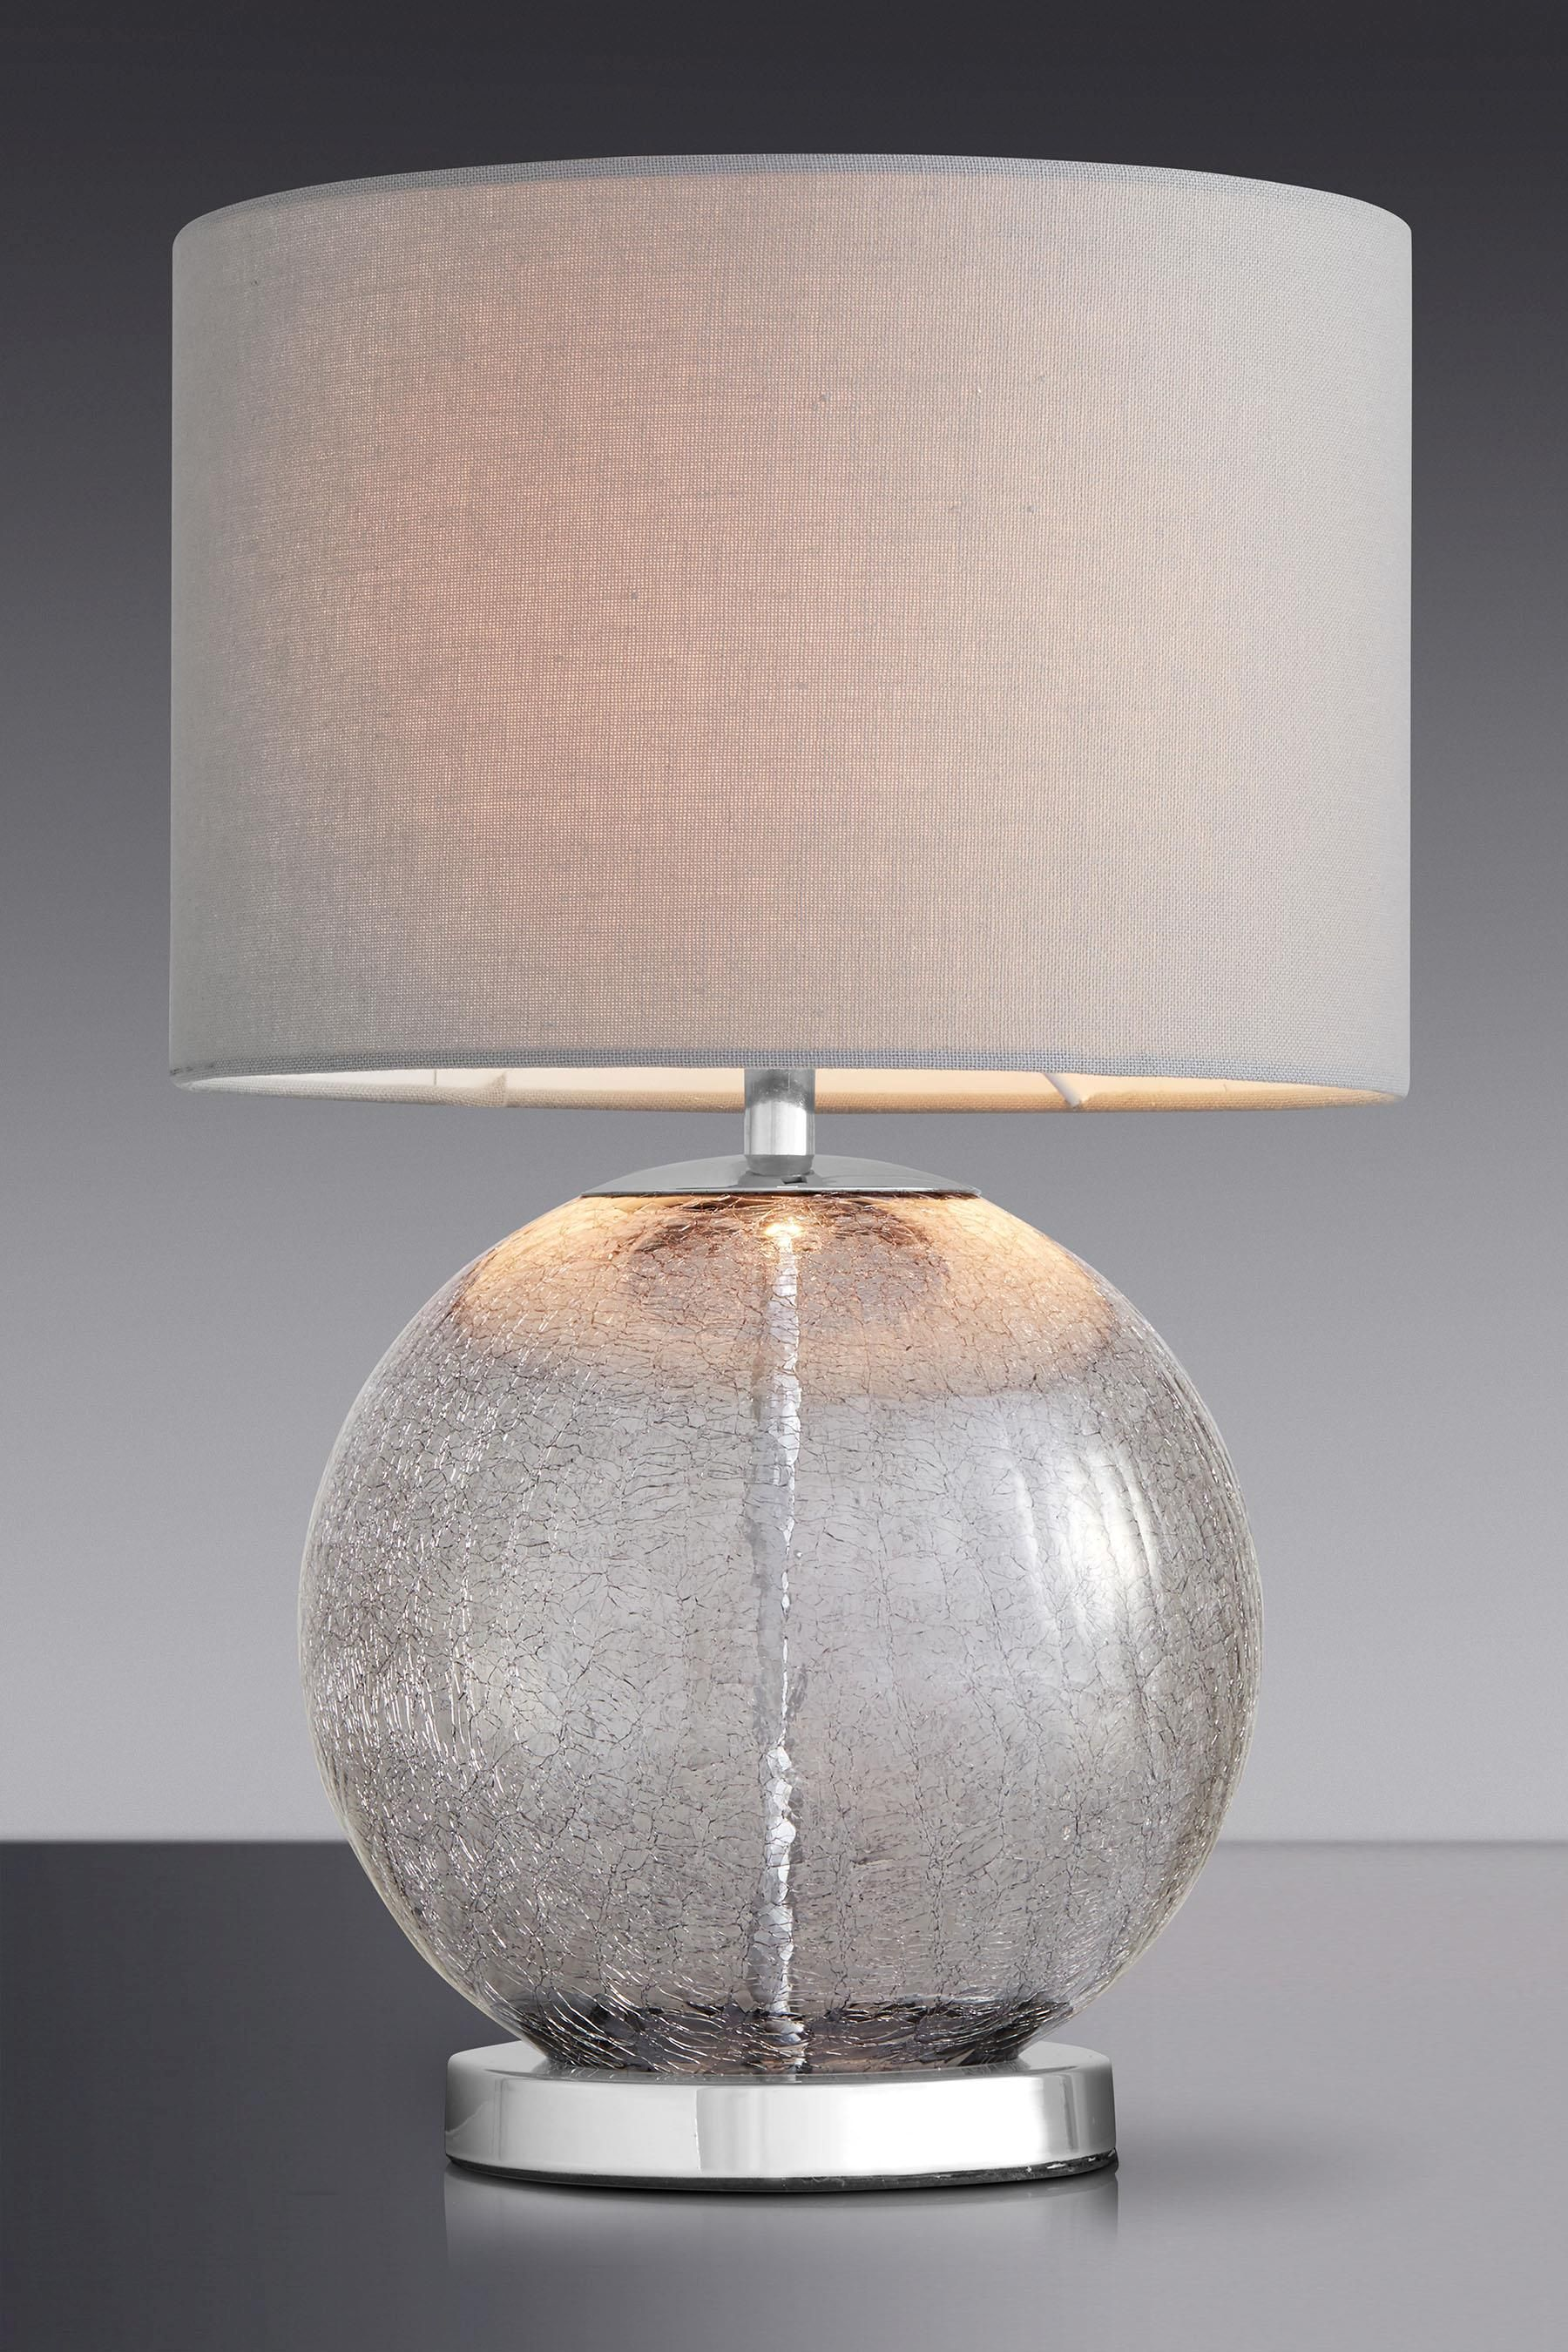 Glass Crackle Lamp Buy Smoke Crackle Glass Table Lamp From The Next Uk Online Shop